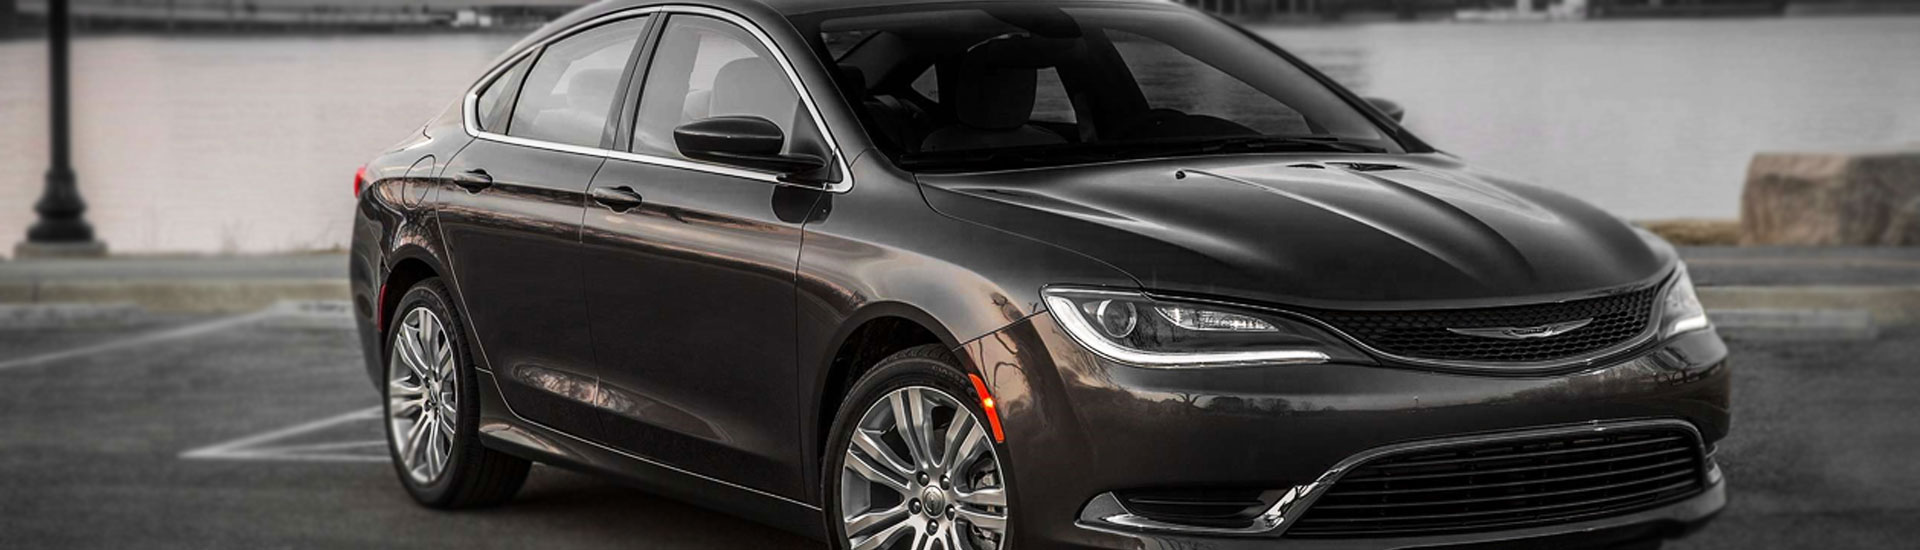 news chrysler edition revealed headlight unit s special